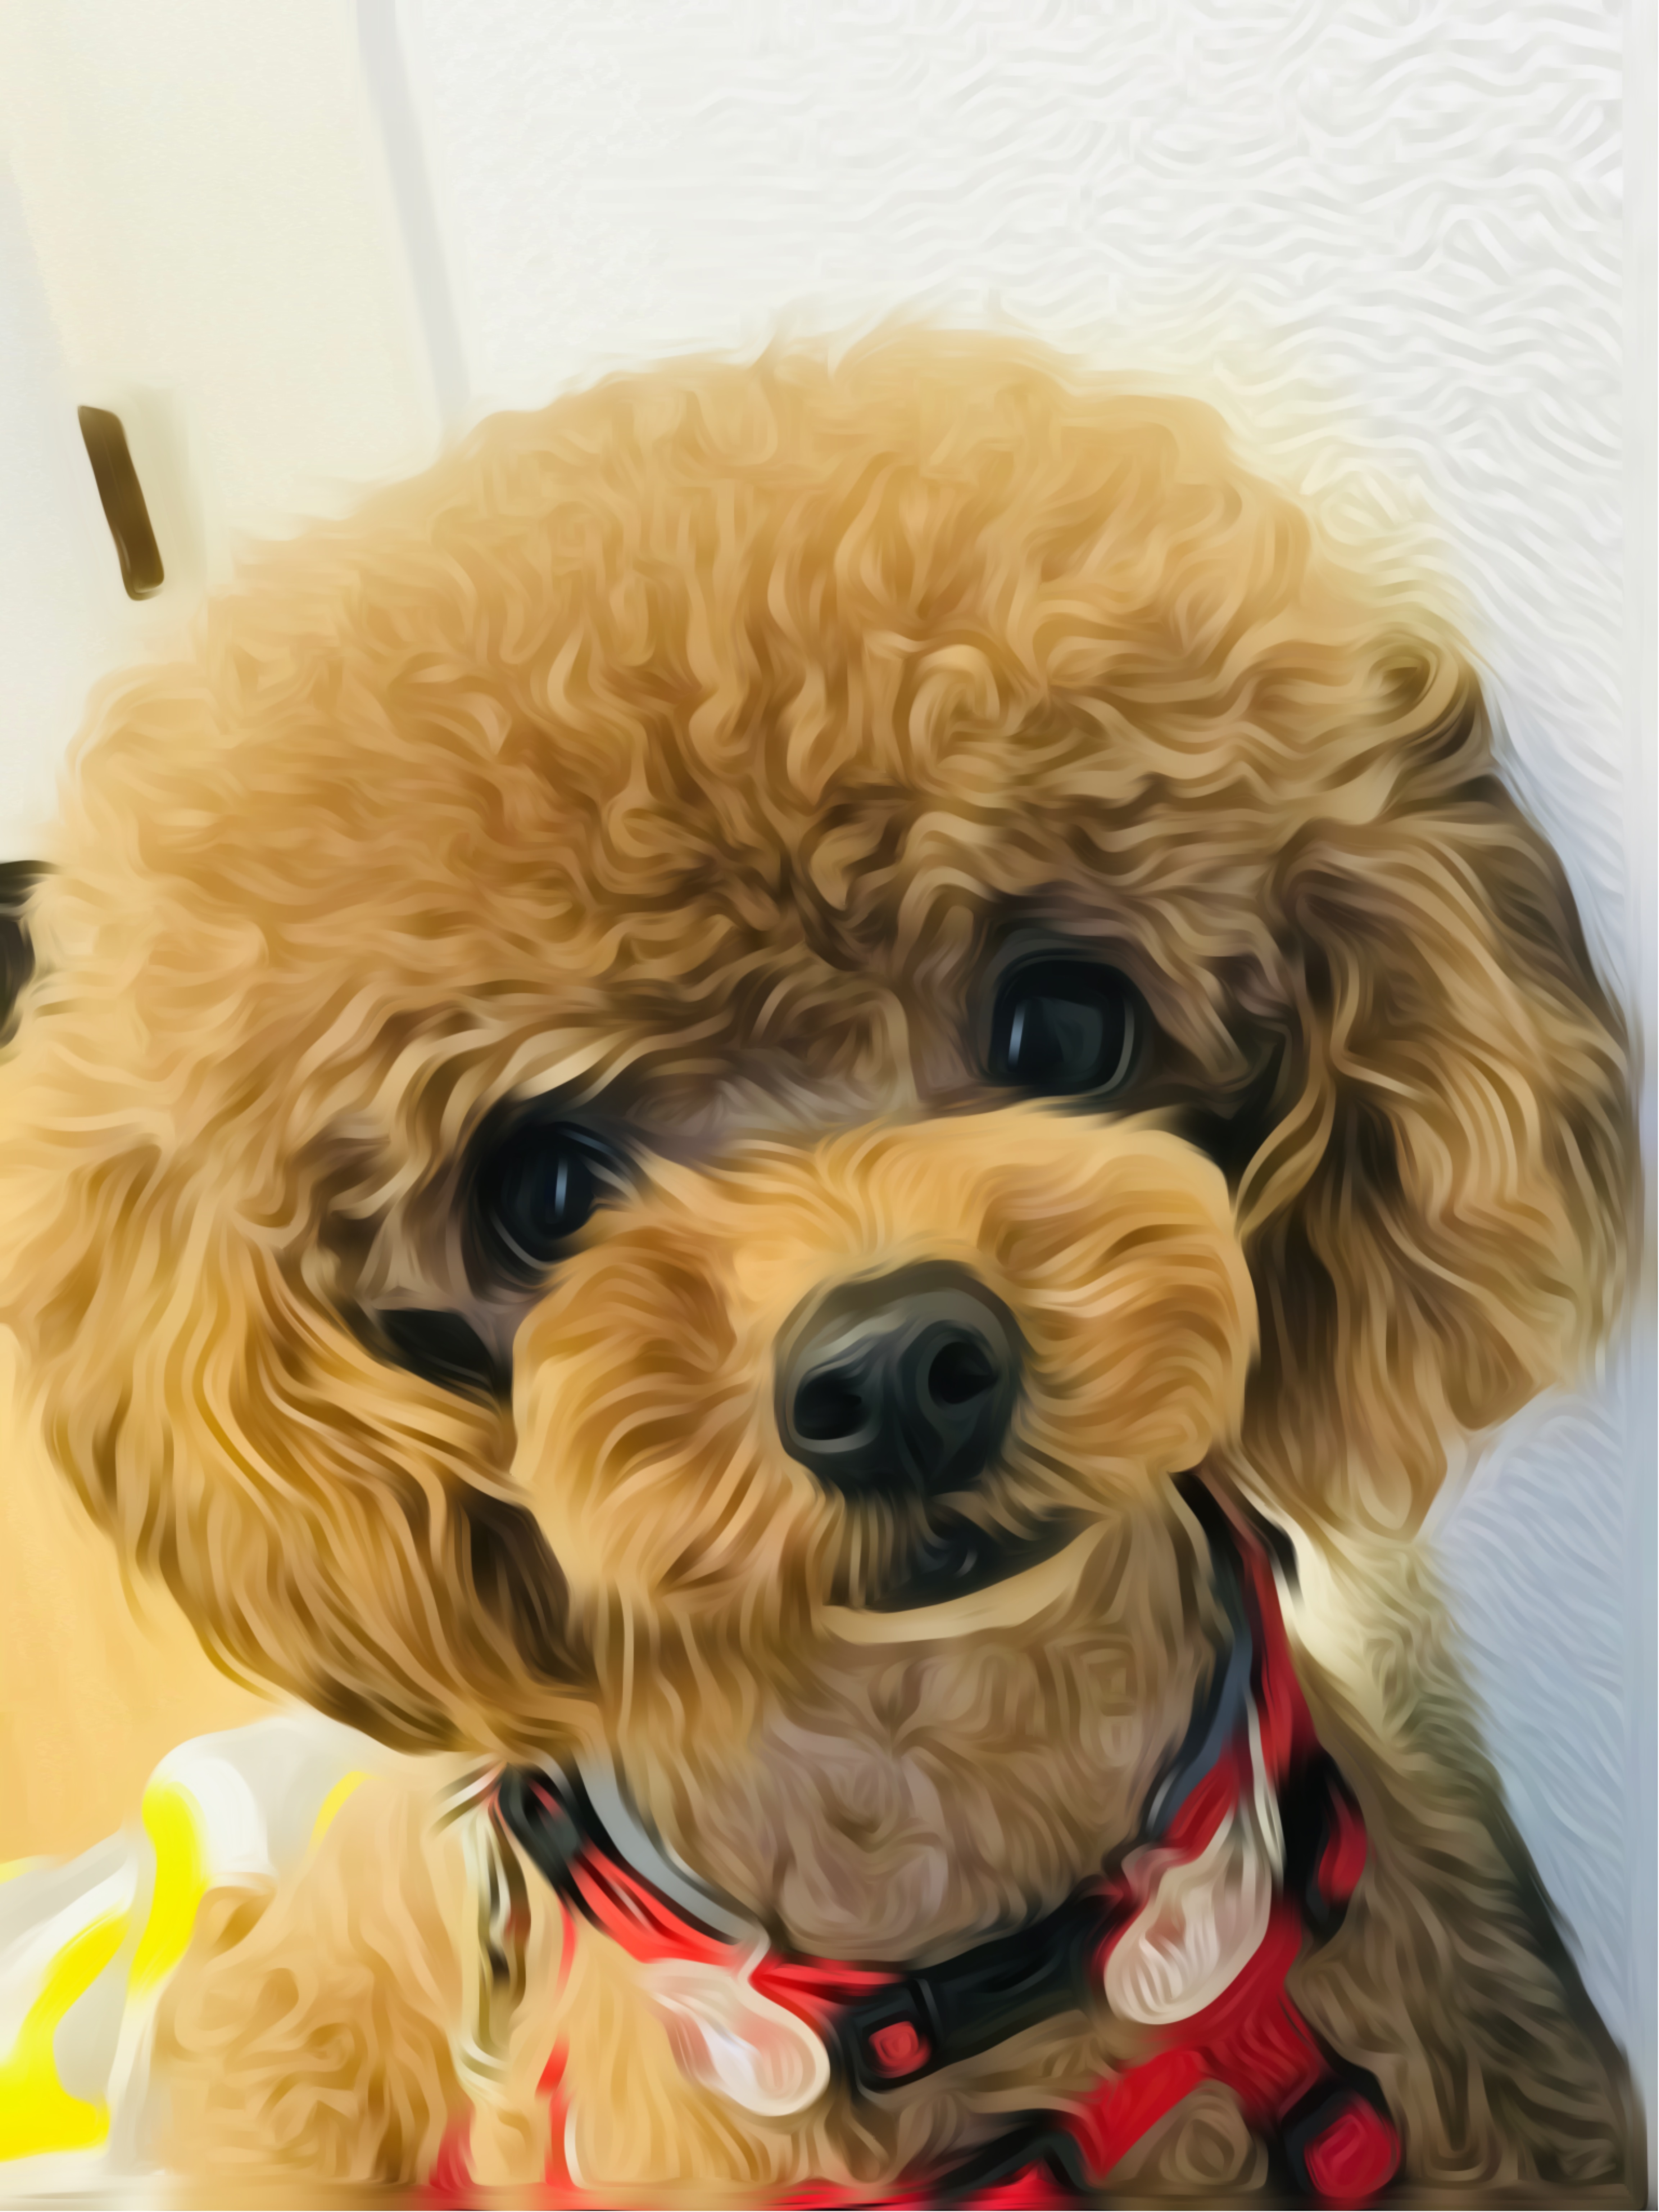 Toy Poodle Puppies for Sale in Michigan - DogsNow